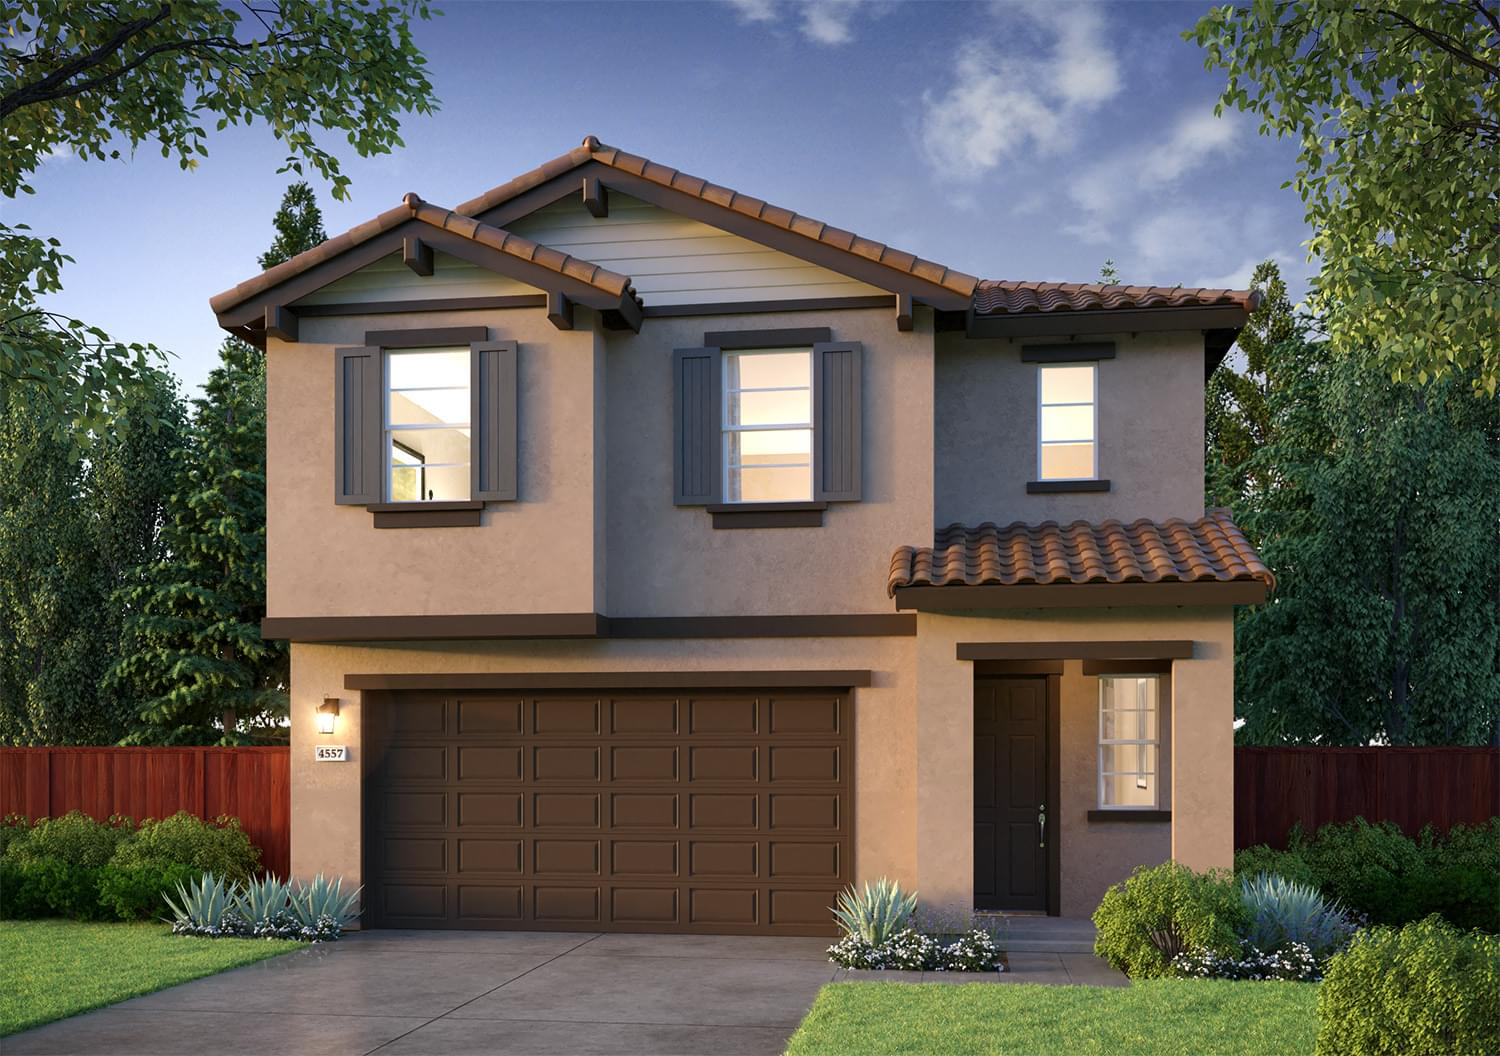 305 Redbud Court in , CA by DeNova Homes